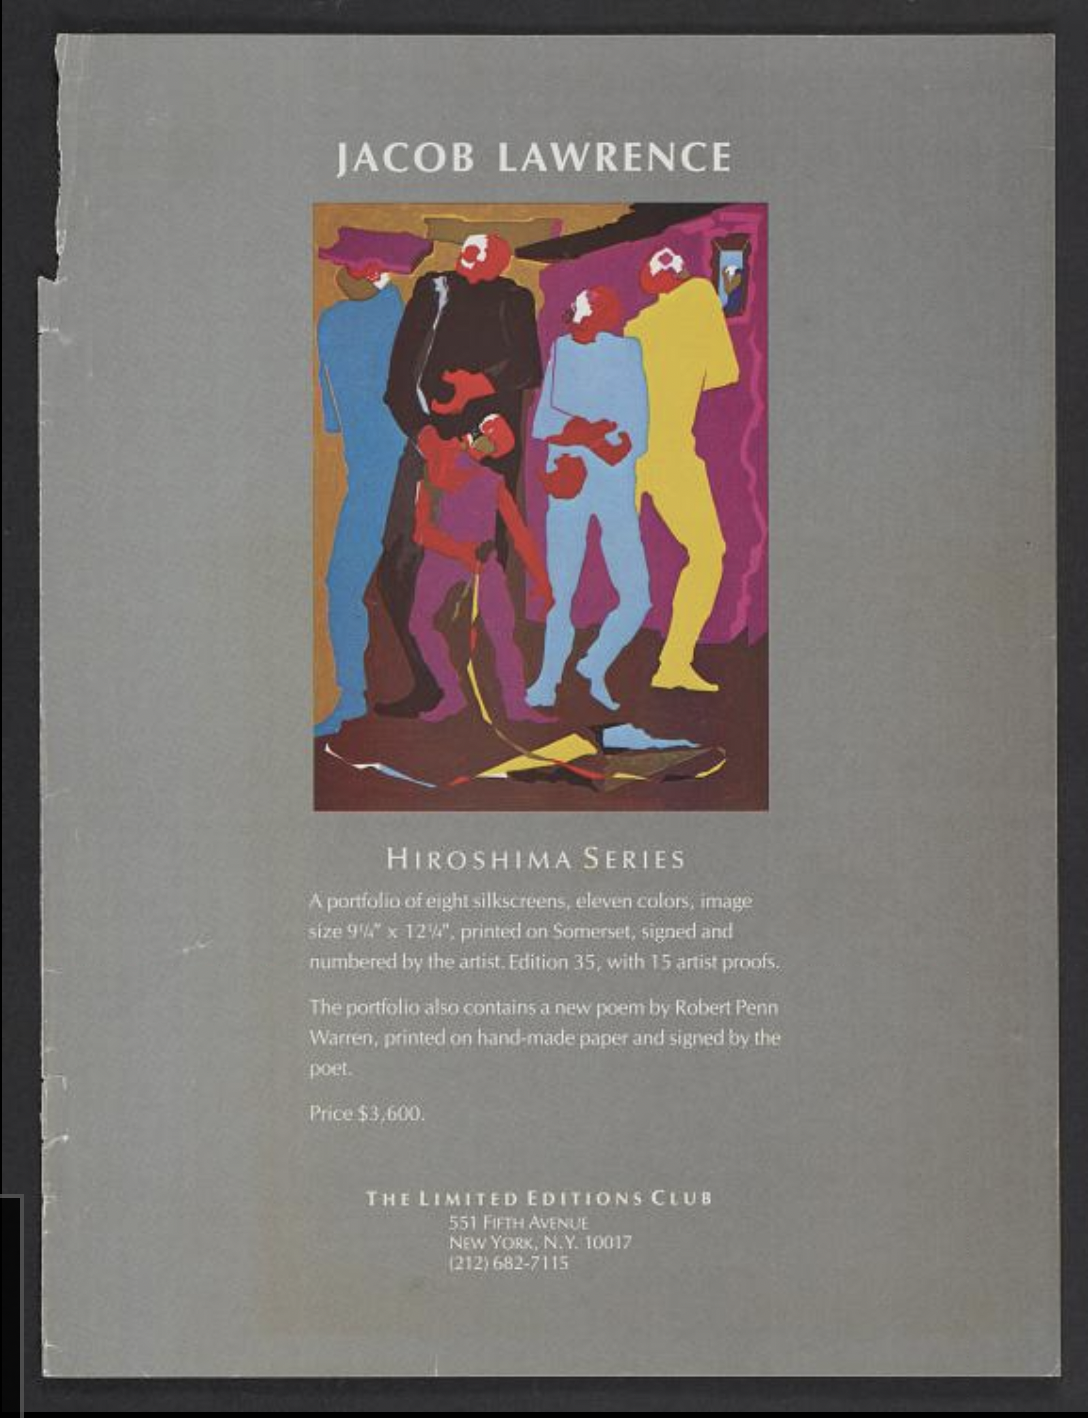 Photograph of portfolio jacket including Lawrence's Boy with Kite (1983) from Hiroshima series with text explaining dimensions of the silk screen prints and that there is a poem by Robert Penn Warren.